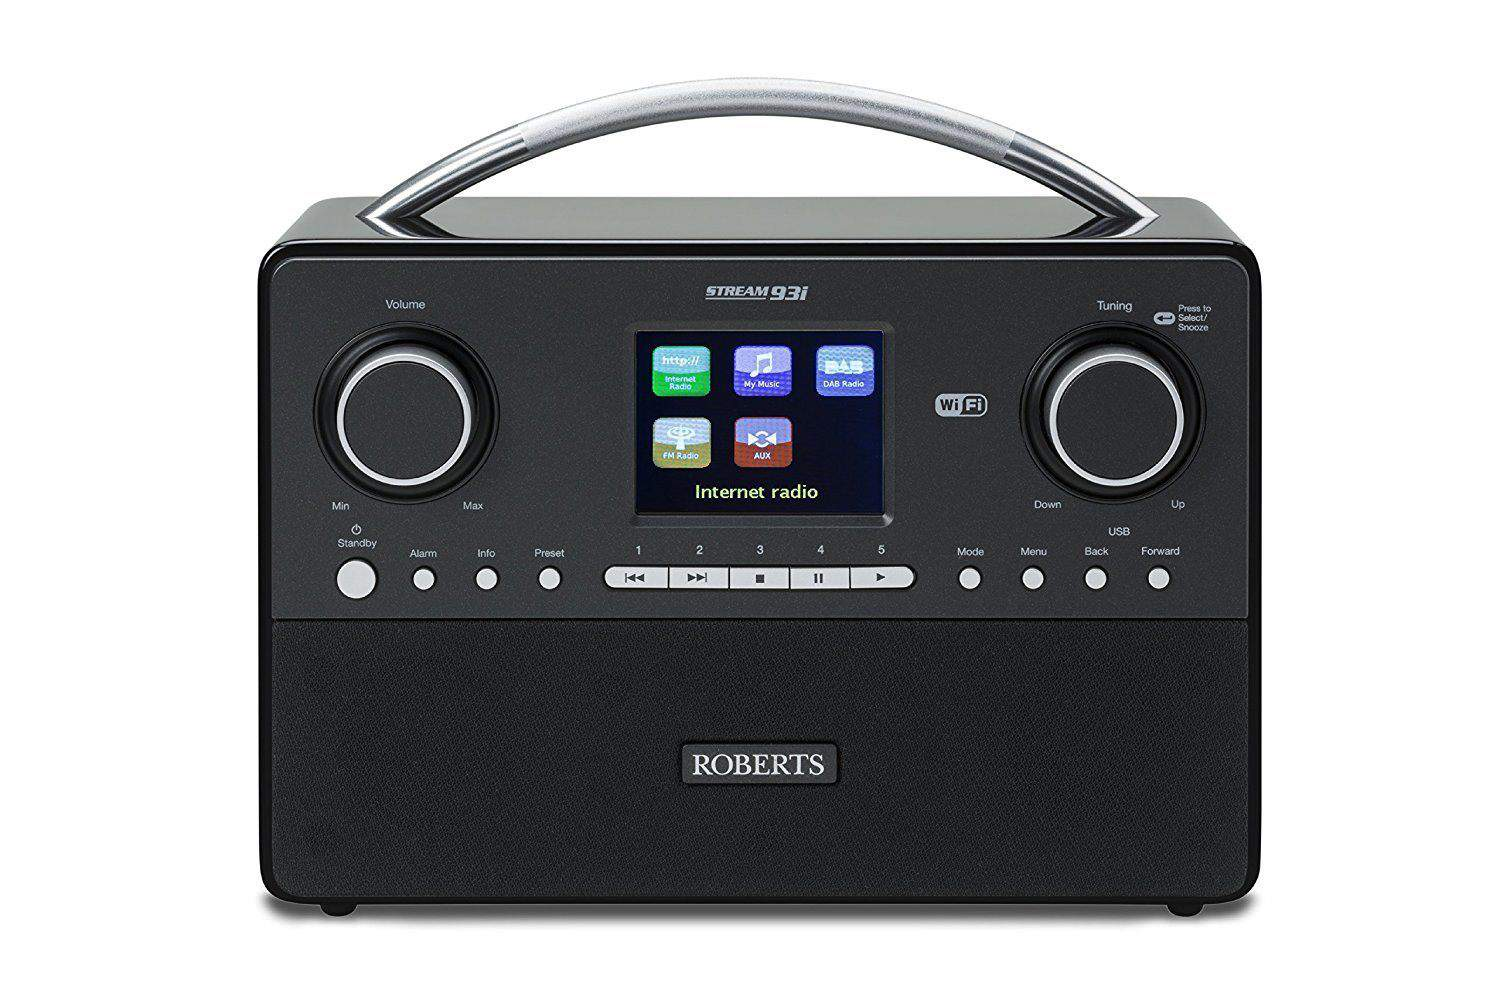 Small Rechargeable DAB Radio – Roberts